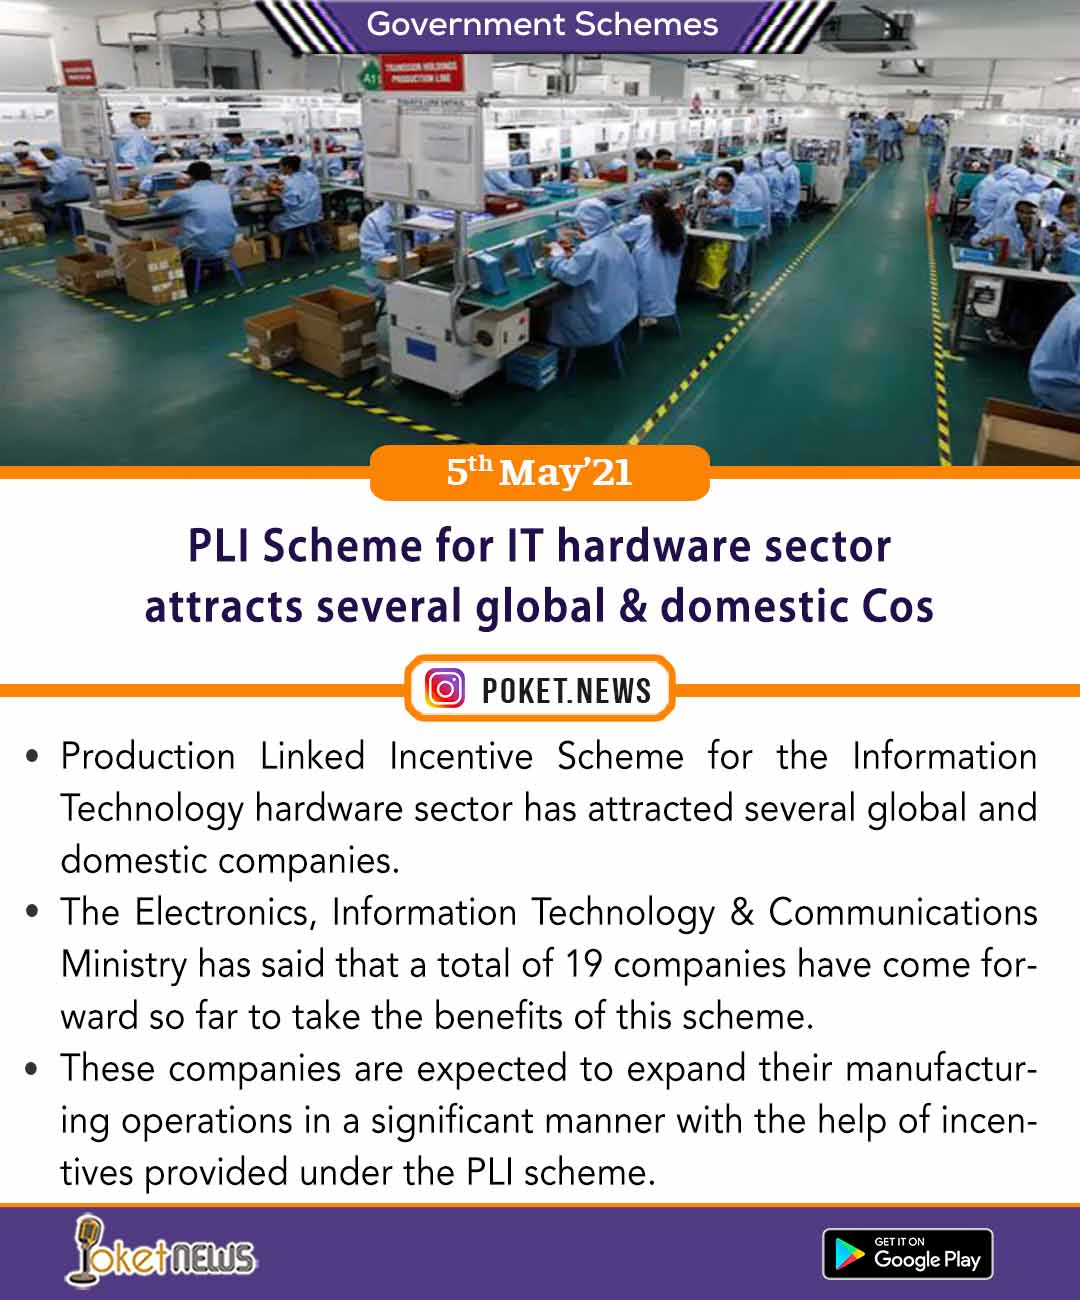 PLI Scheme for IT hardware sector attracts several global & domestic Cos